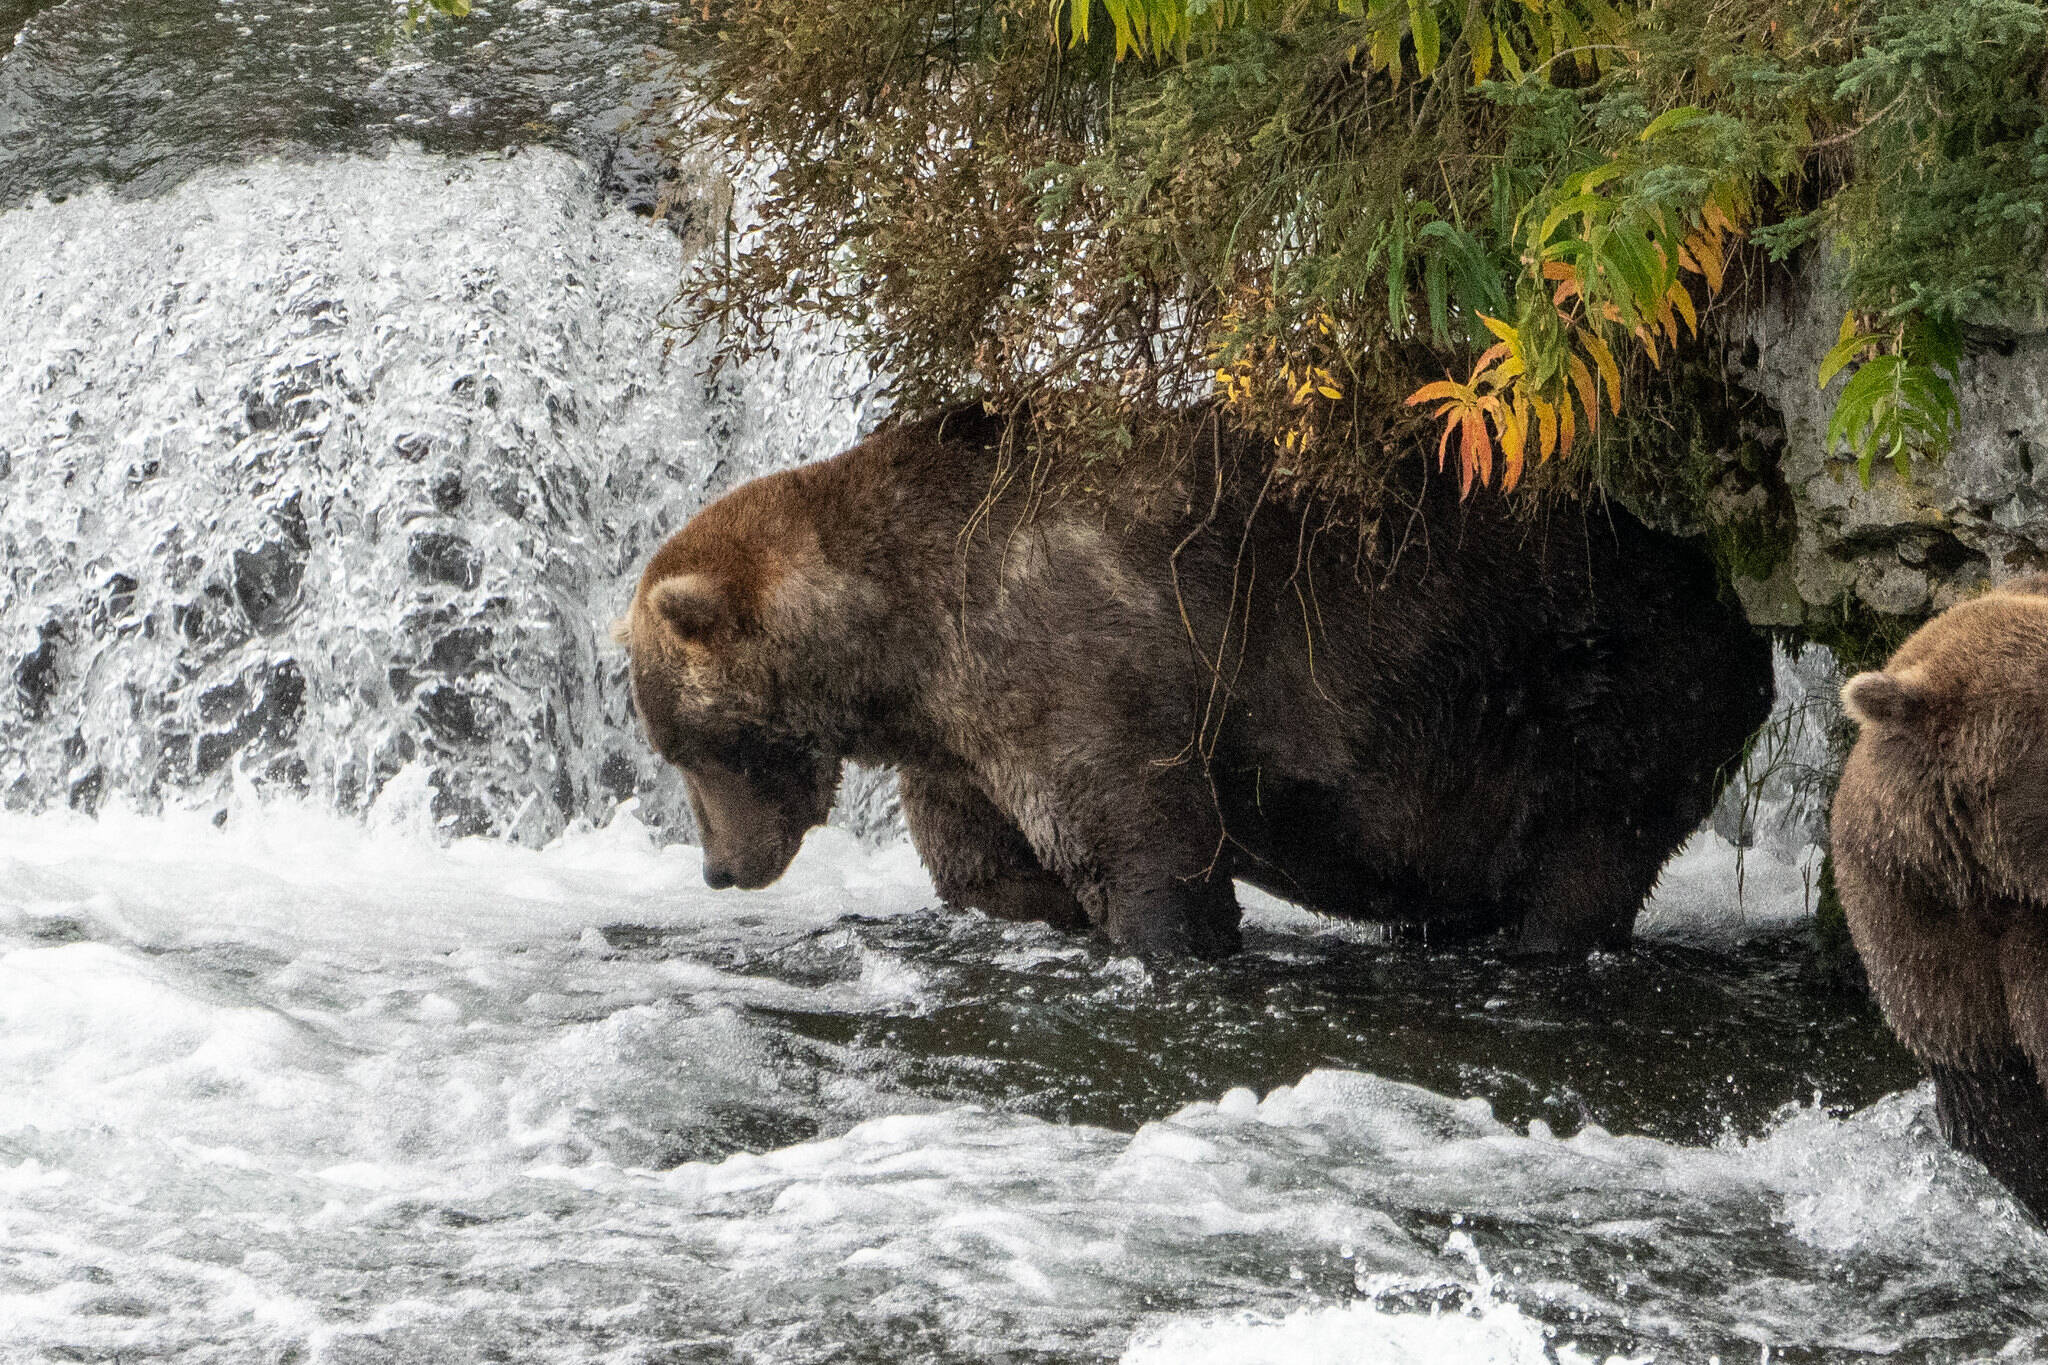 Otis, the four-time Fat Bear Week champion, fishes at Katmai National Park on Sept. 16, 2021. (Photo courtesy of Lian Law, National Parks Service)